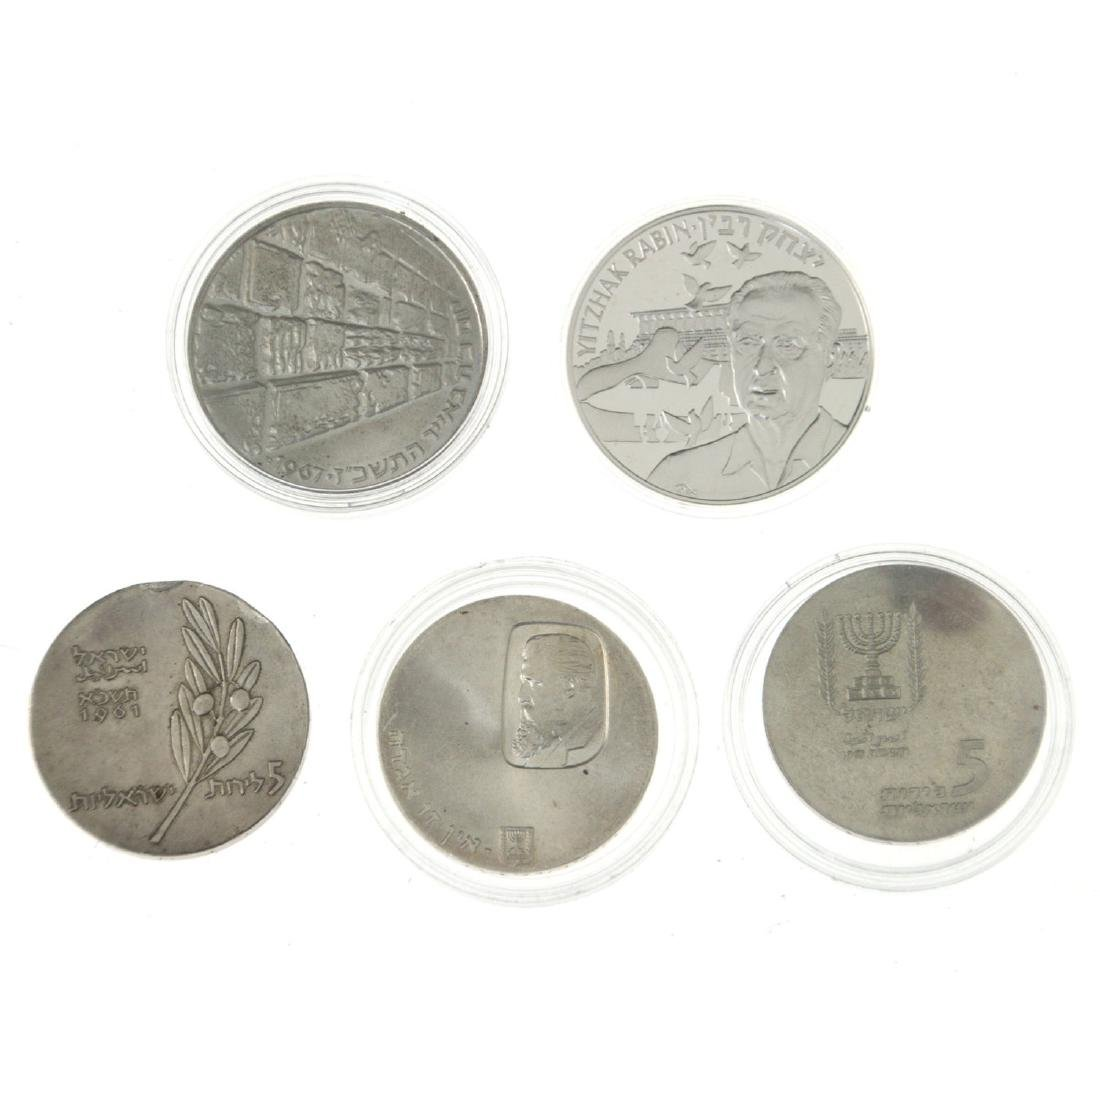 Five Israel Silver Coins.